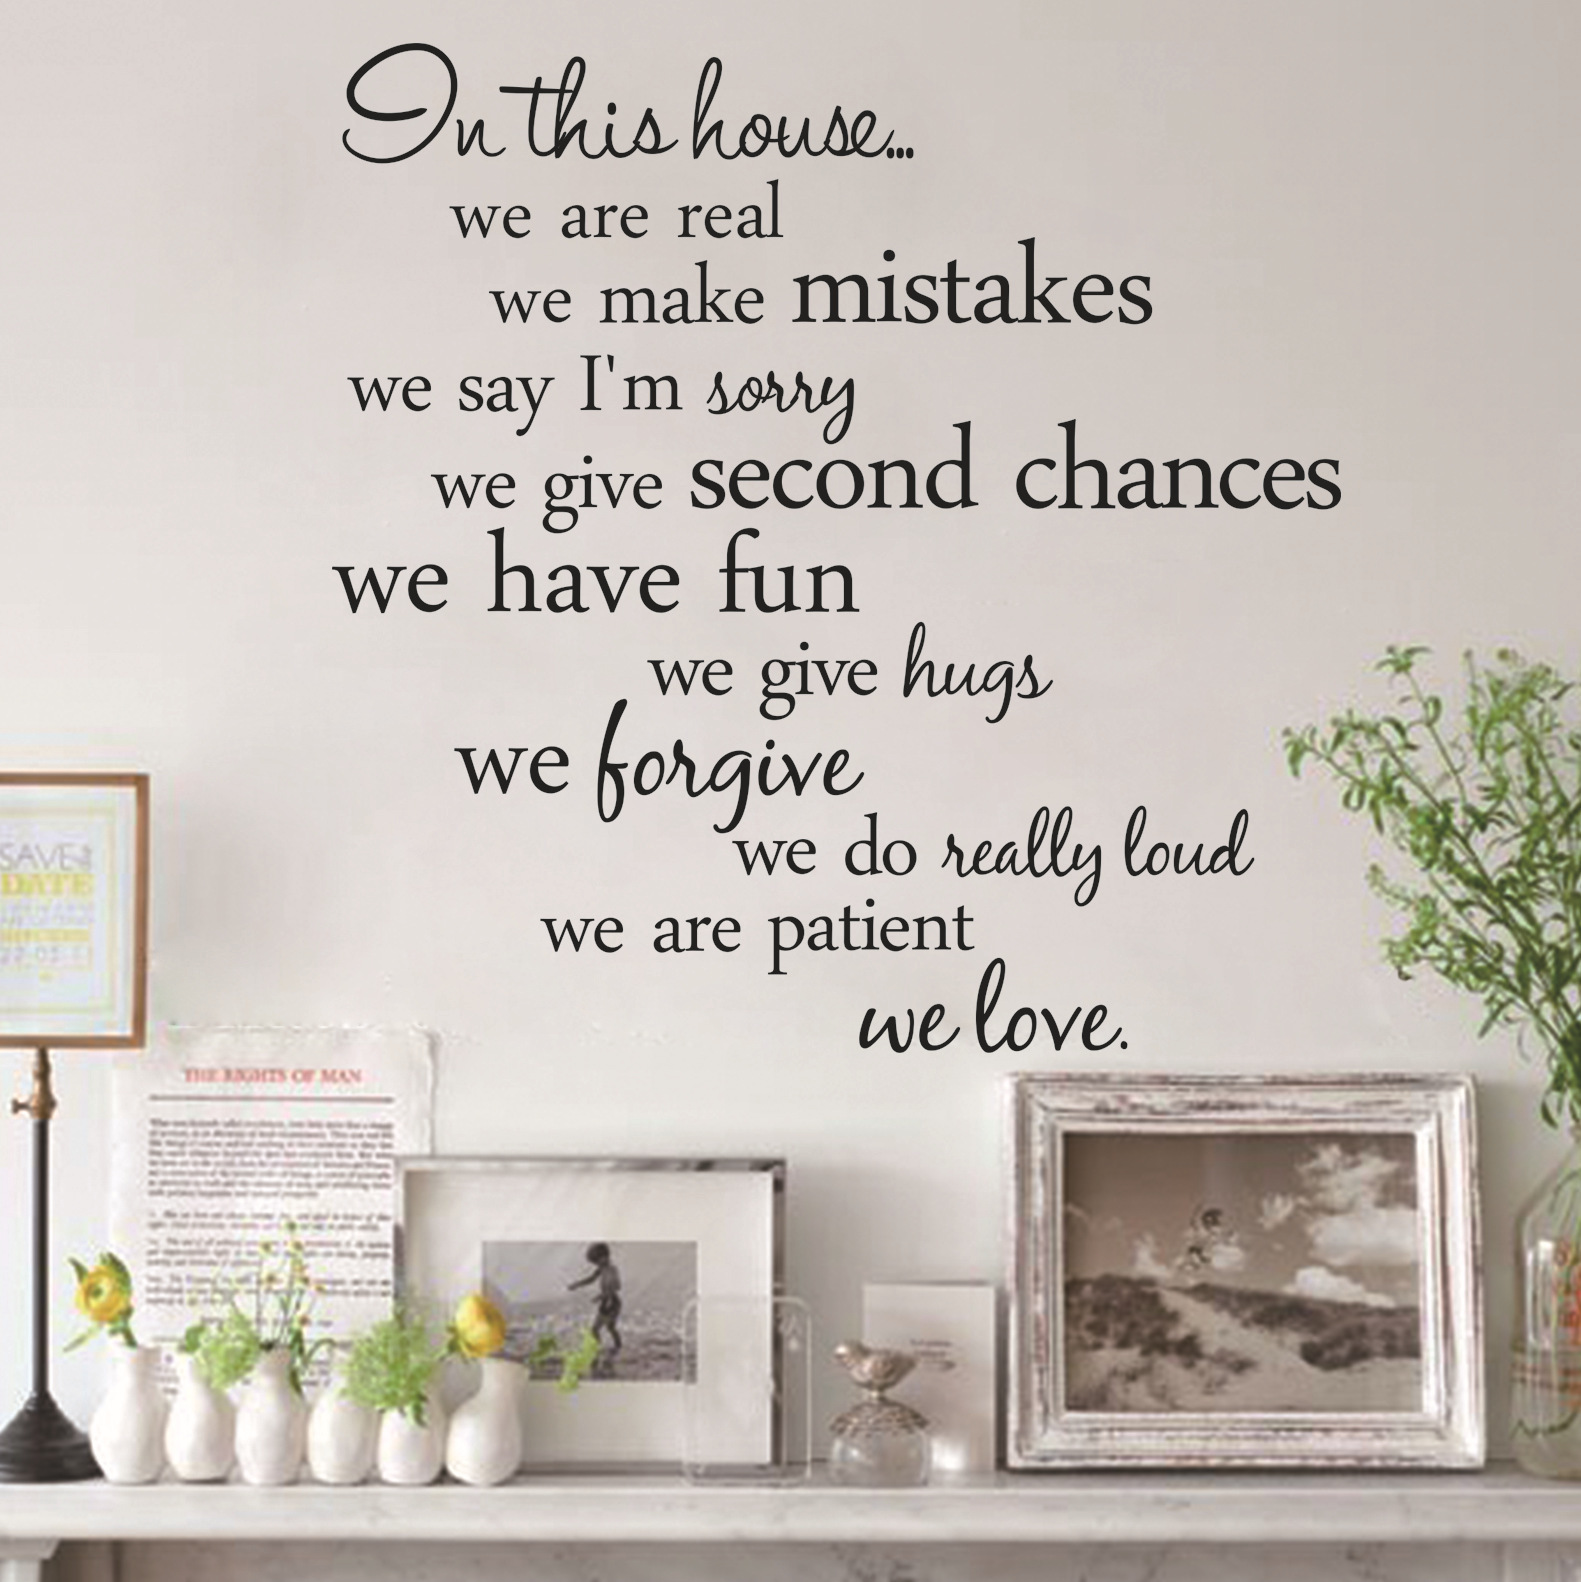 Wall Writing Decor Online Buy Wholesale Wall Writing Decor From China Wall Writing